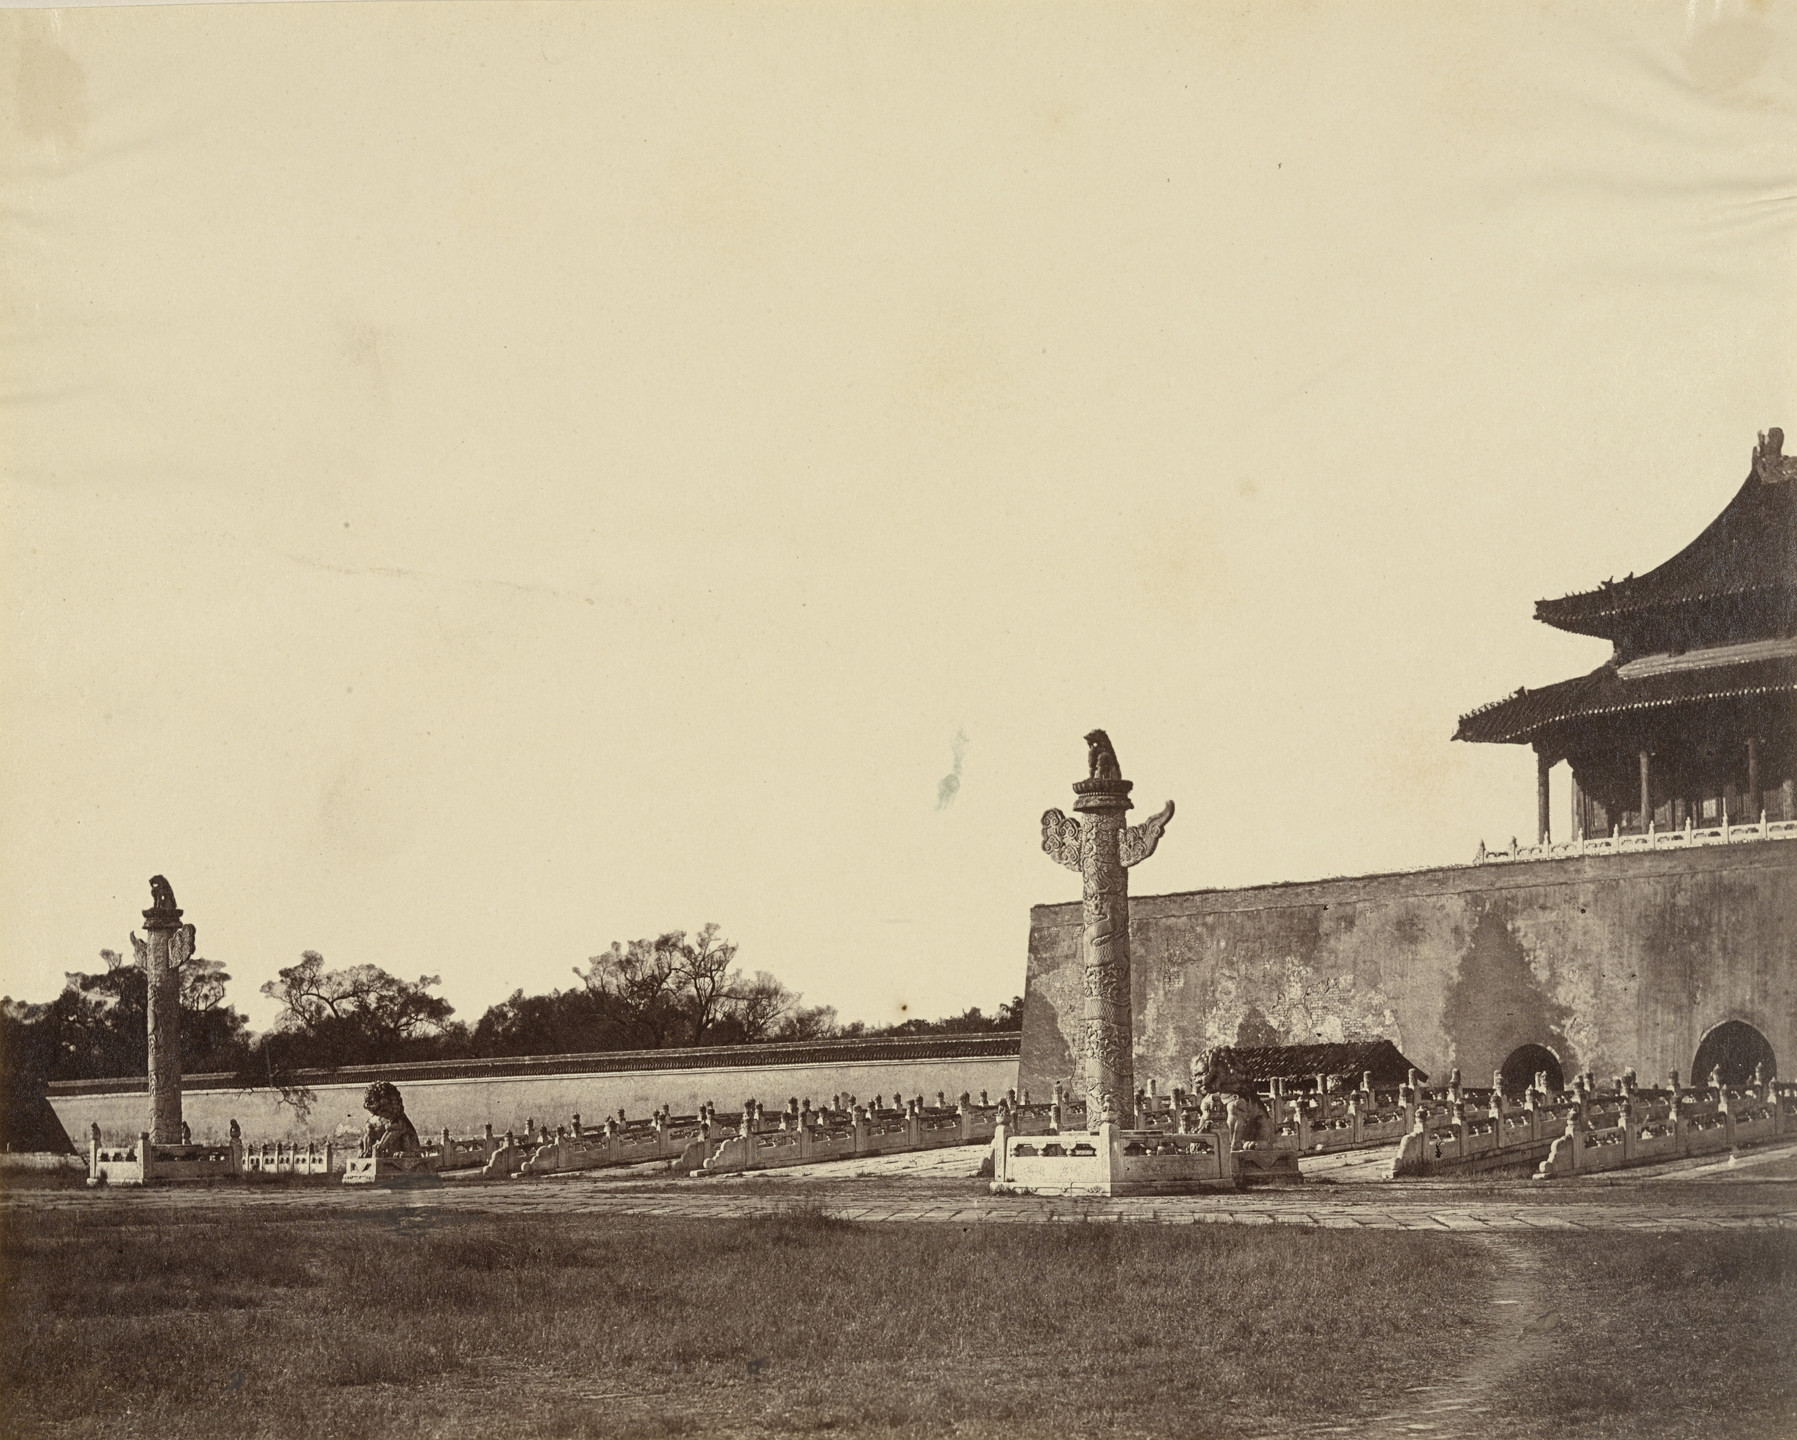 Felice Beato. Entrance to Winter Palace in Peking. October 29, 1860